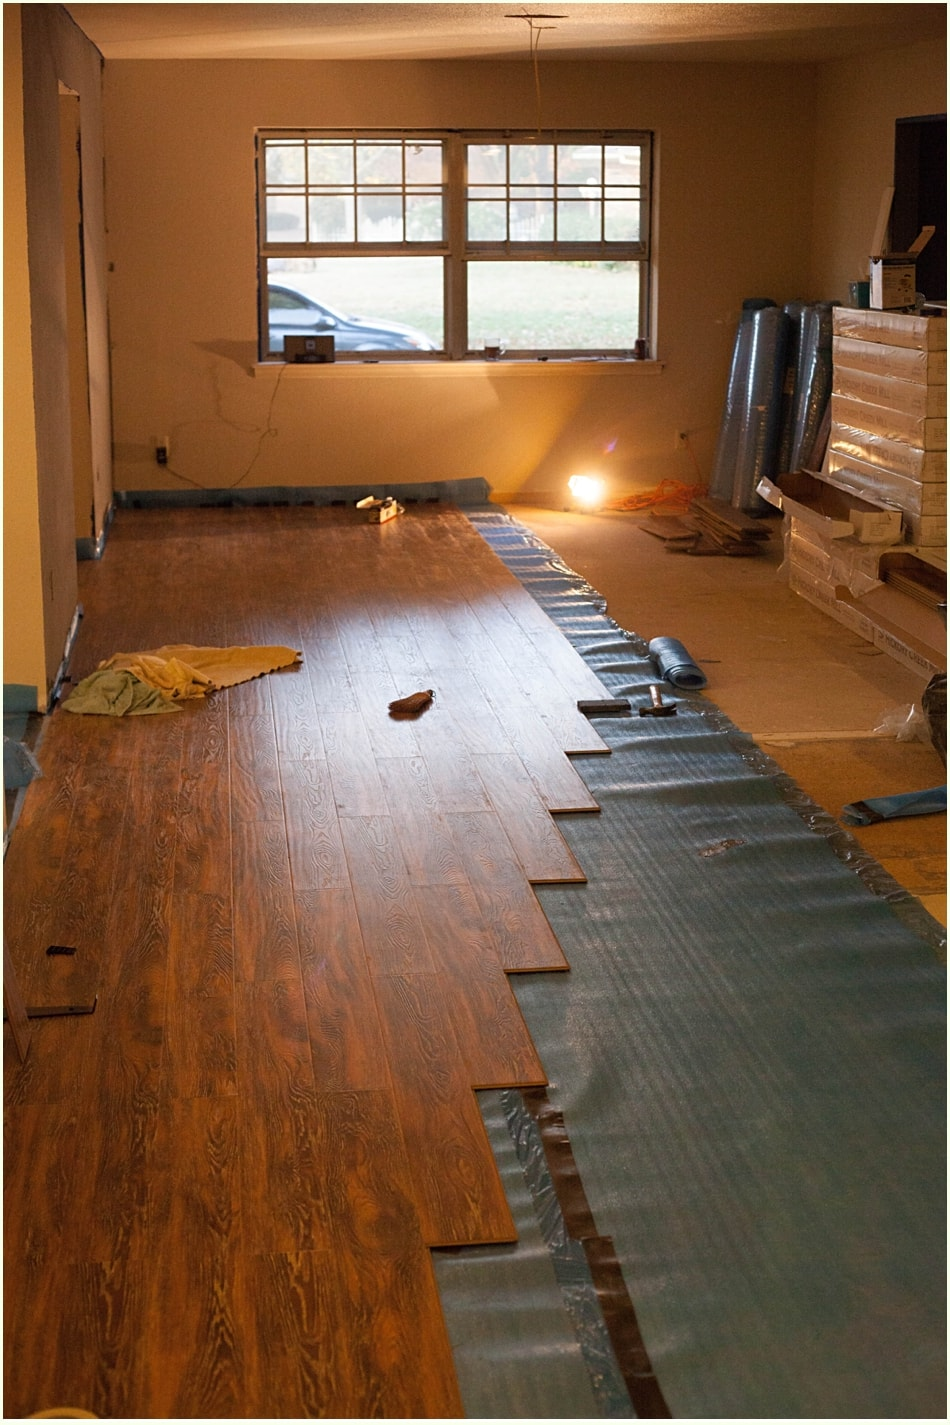 Laying Hardwood Floors In Galley Kitchen One Of The Best